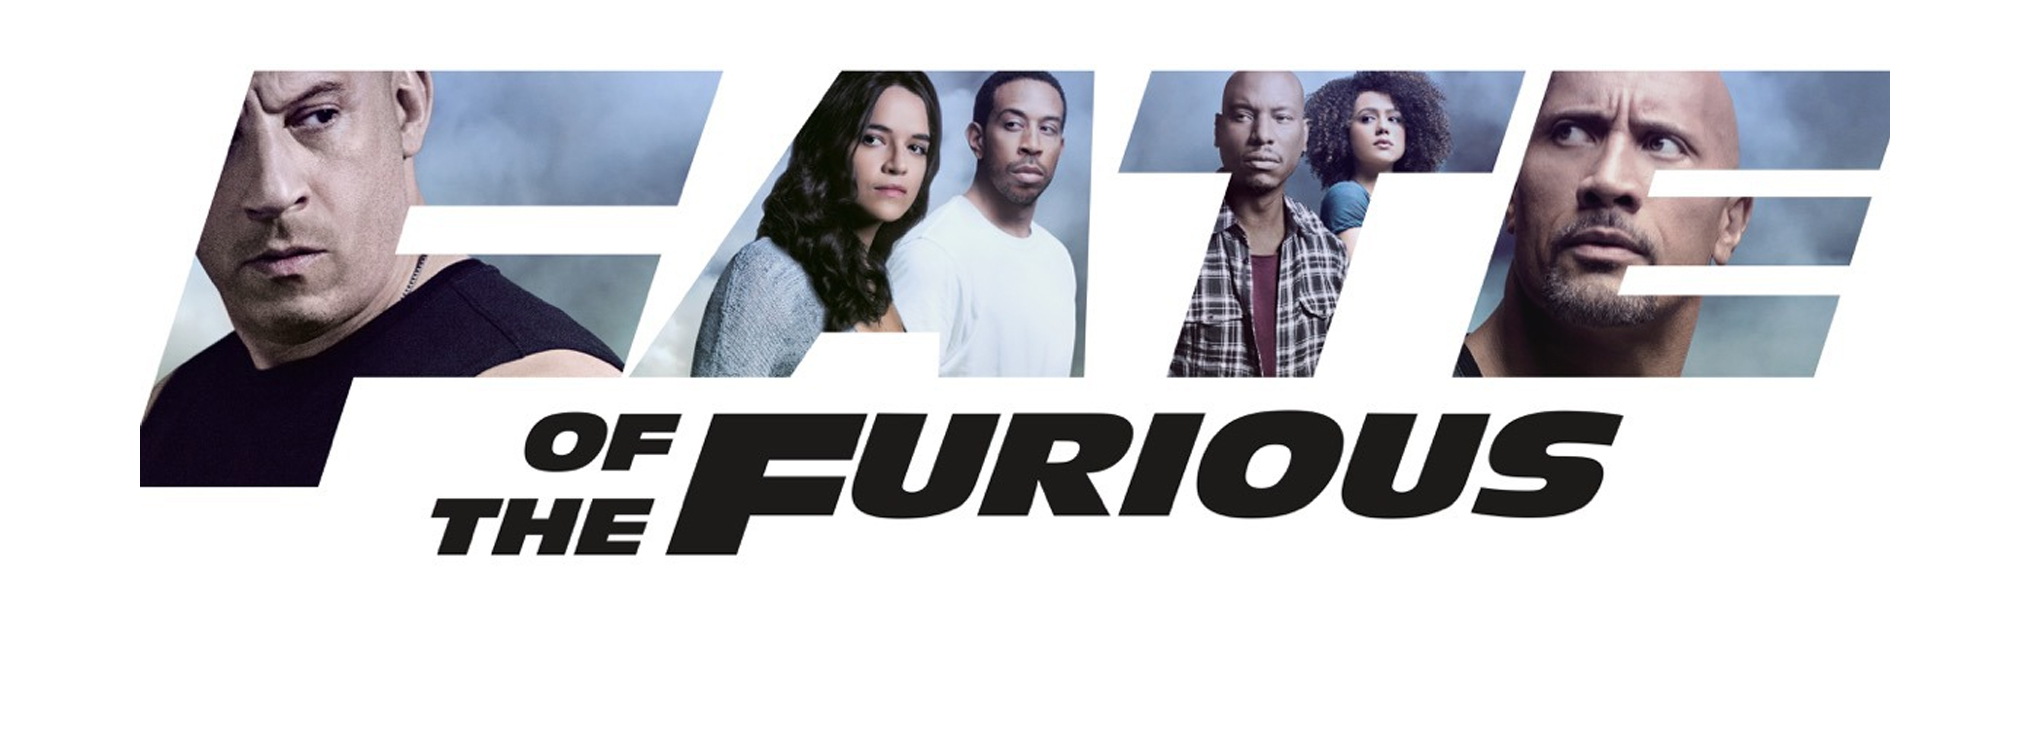 Fate of the Furious is now playing at all Fridley Theatres